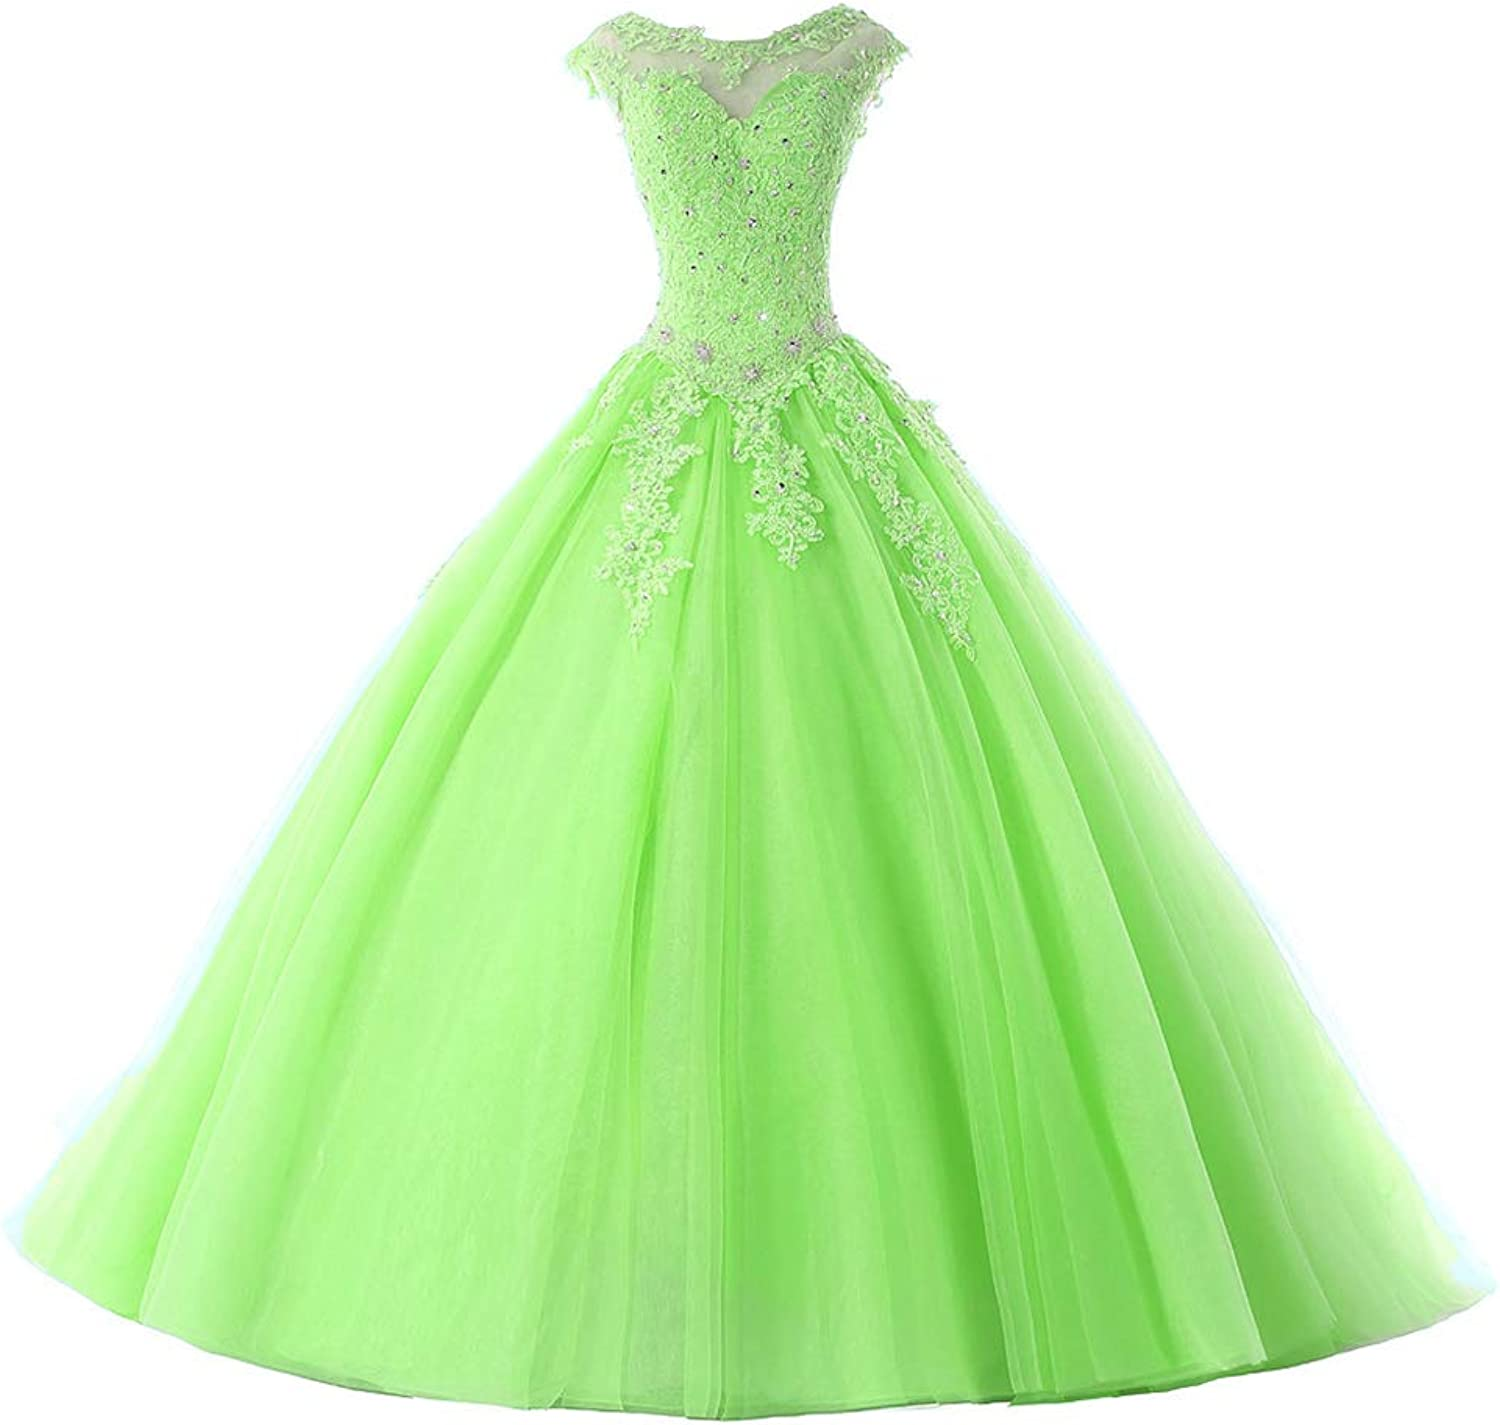 Ball Gown Quinceanera Dresses Tulle Long Prom Party Gowns Sweet 16 Formal Dress